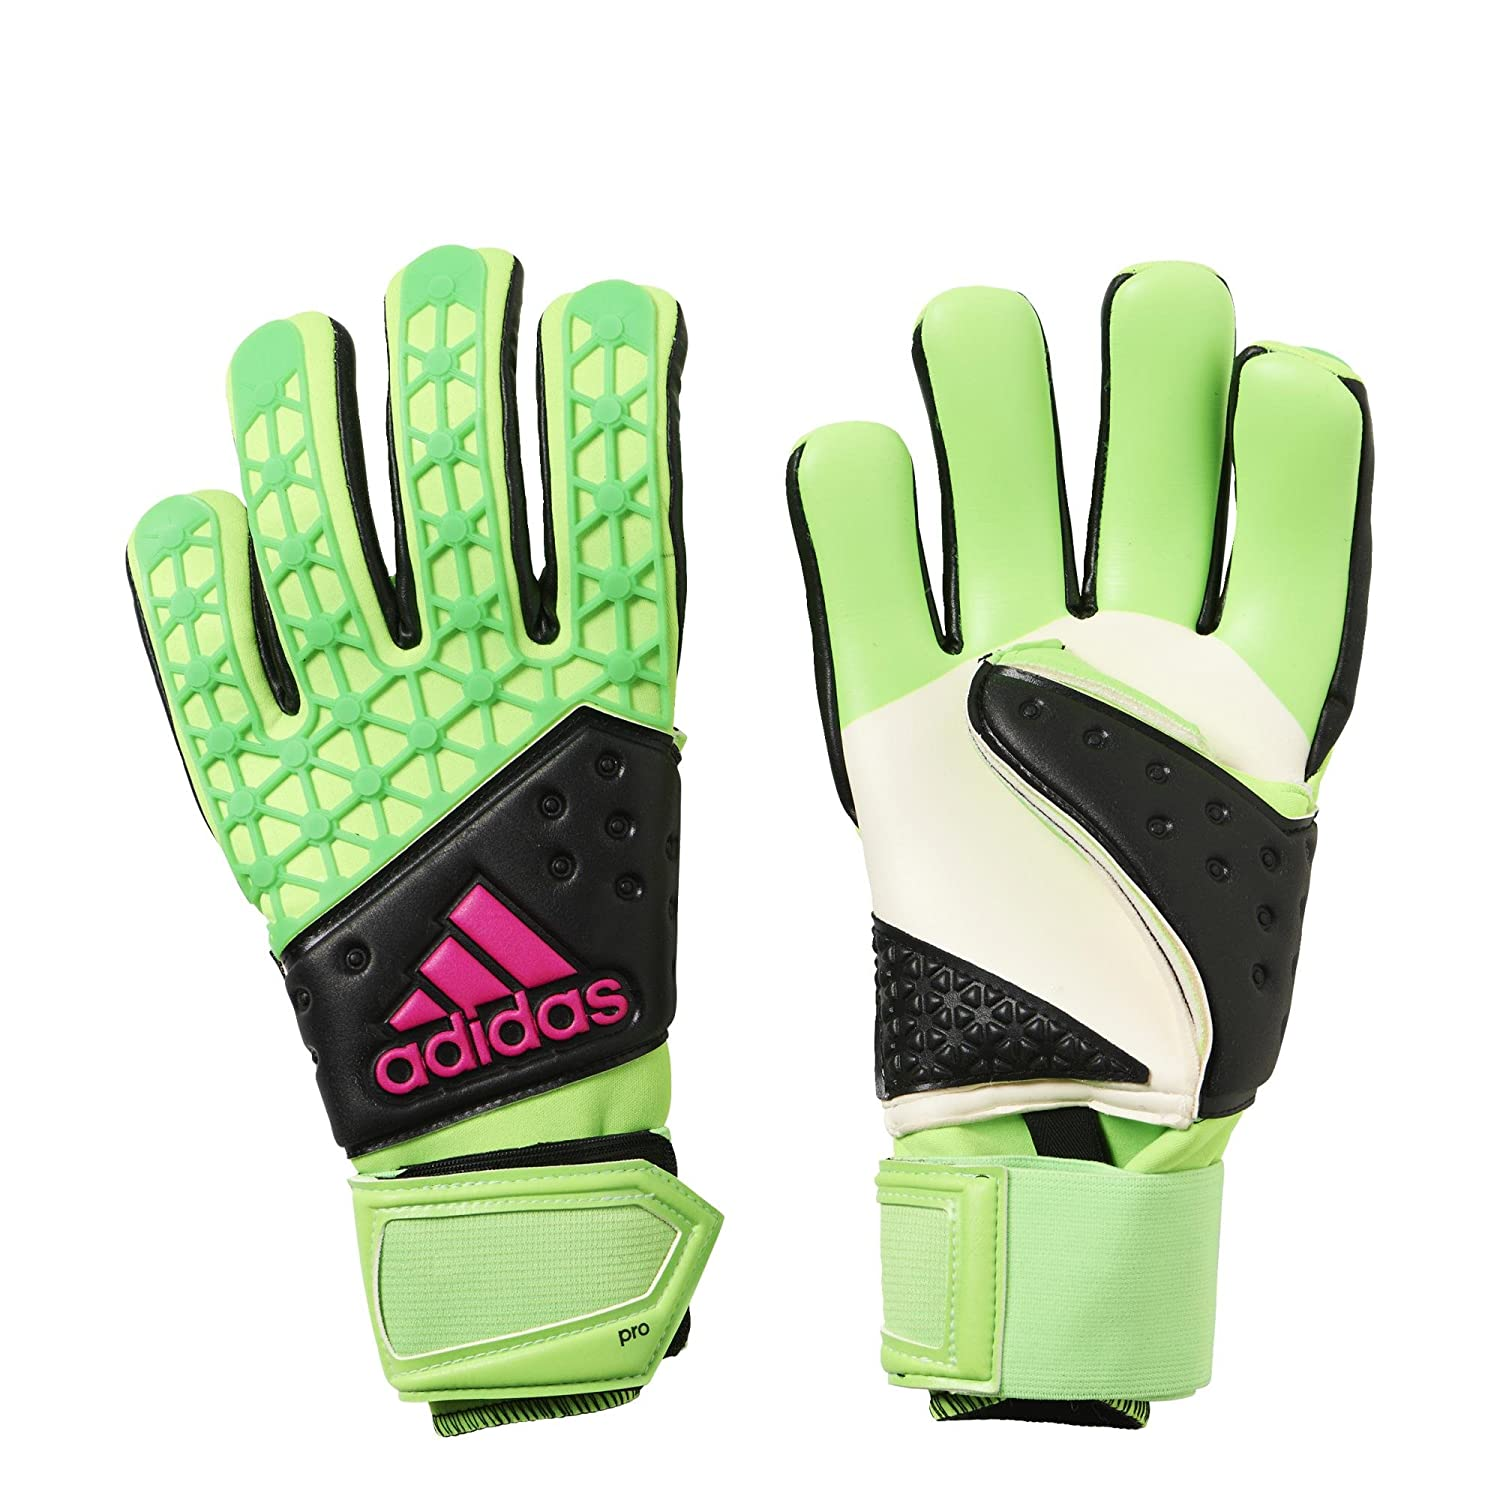 Adidas AceゾーンPro Goalie Gloves B01975A0O4Green|Black|Pink 9